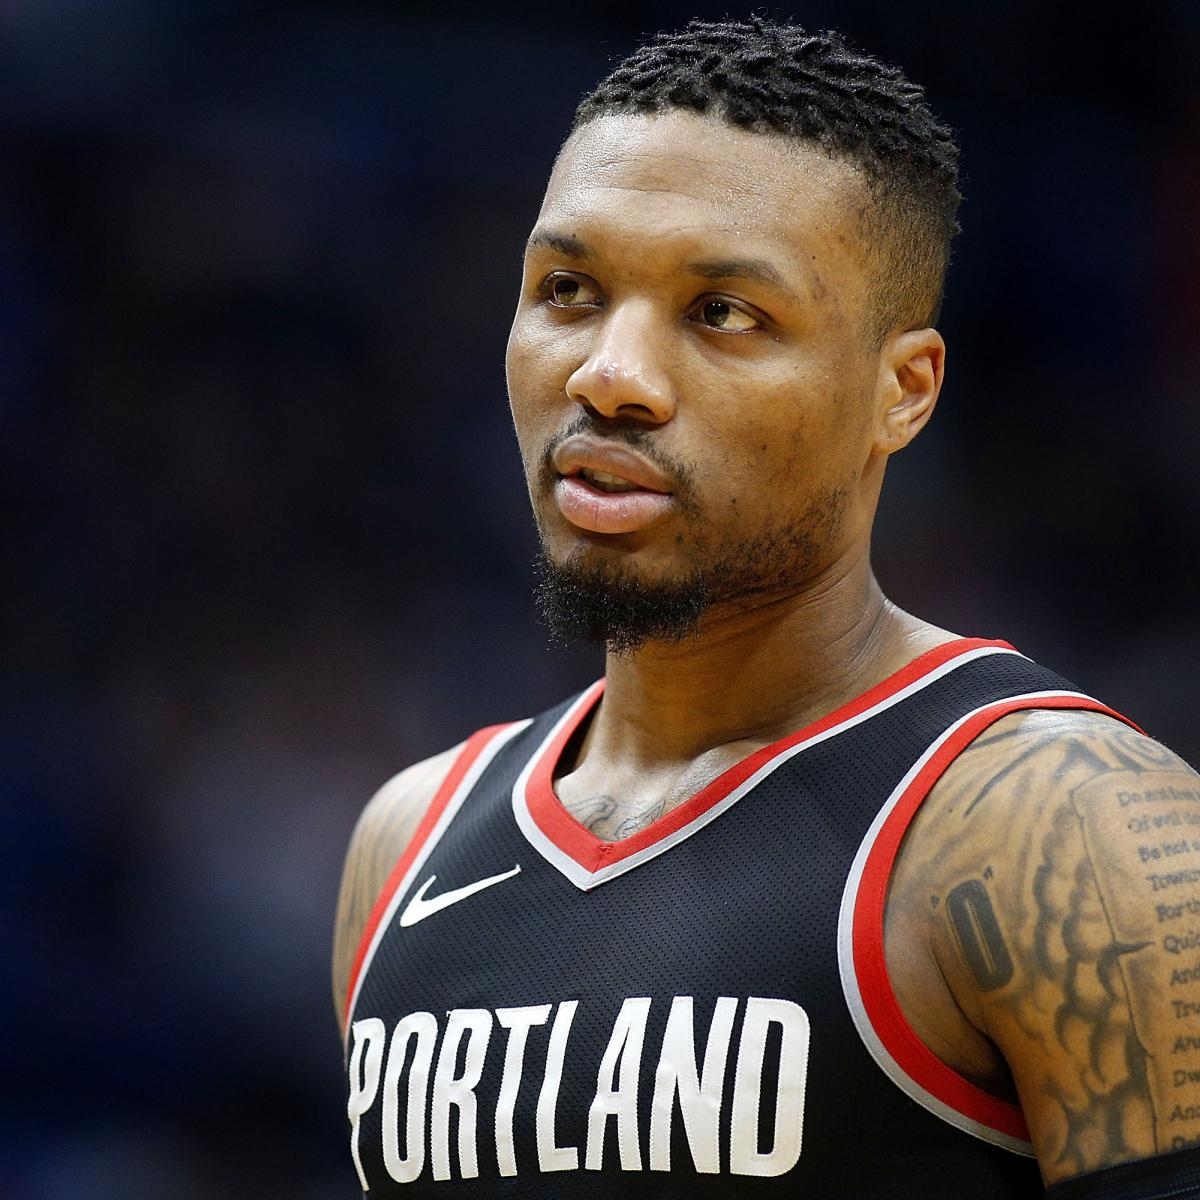 Damian Lillard: Damian Lillard's Brother Hospitalized After Being Shot